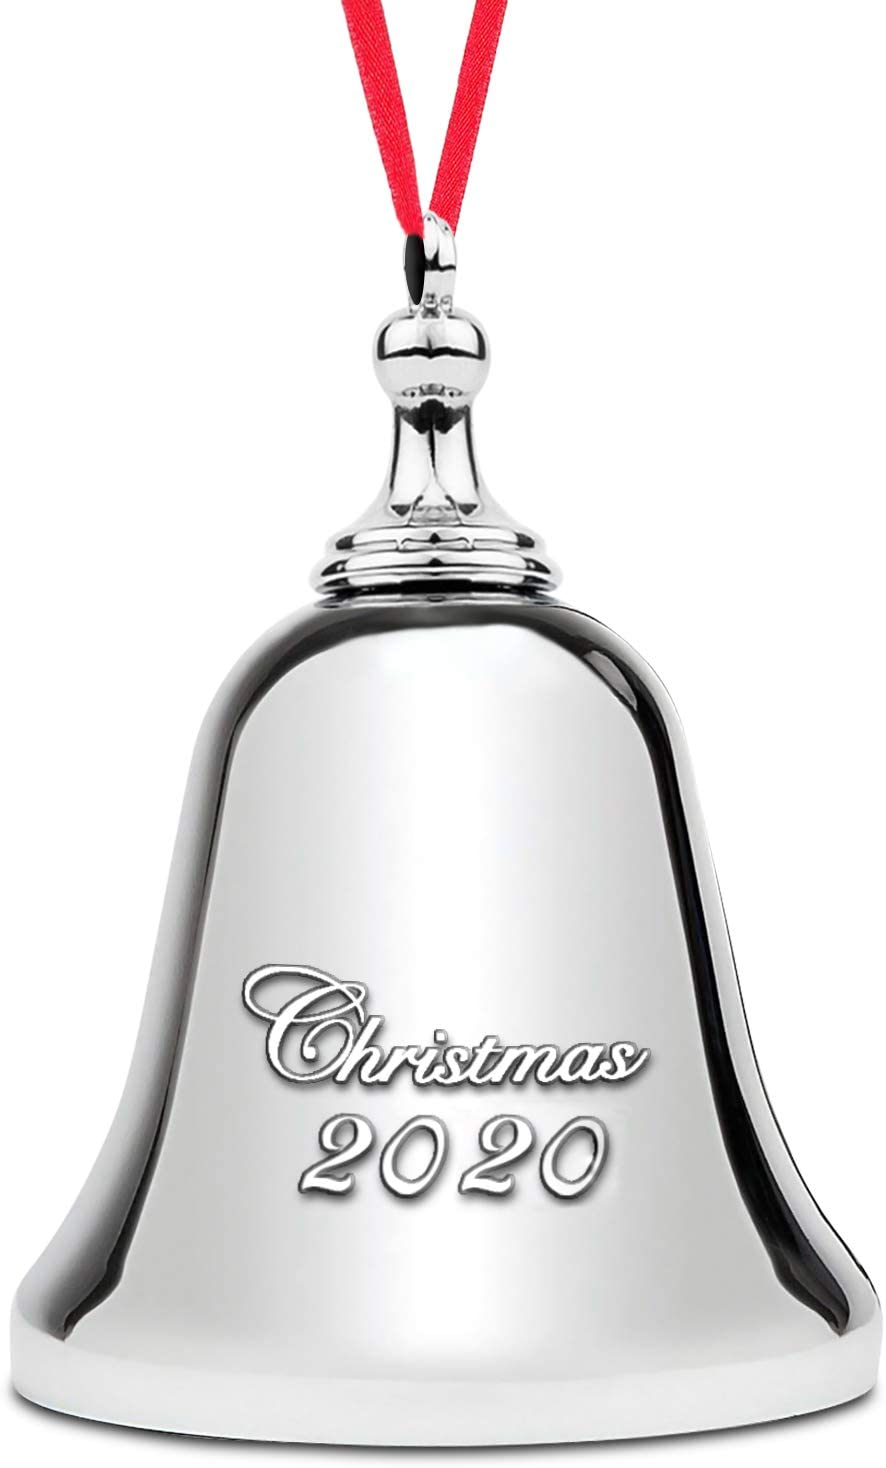 2020 Jingle Bell Ornament – Elegant Christmas Bell Ornament – Silver Bell Ornament for The Christmas Tree – Nickel-Plated 2020 Engraved - Real Bell Decoration with Red Ribbon